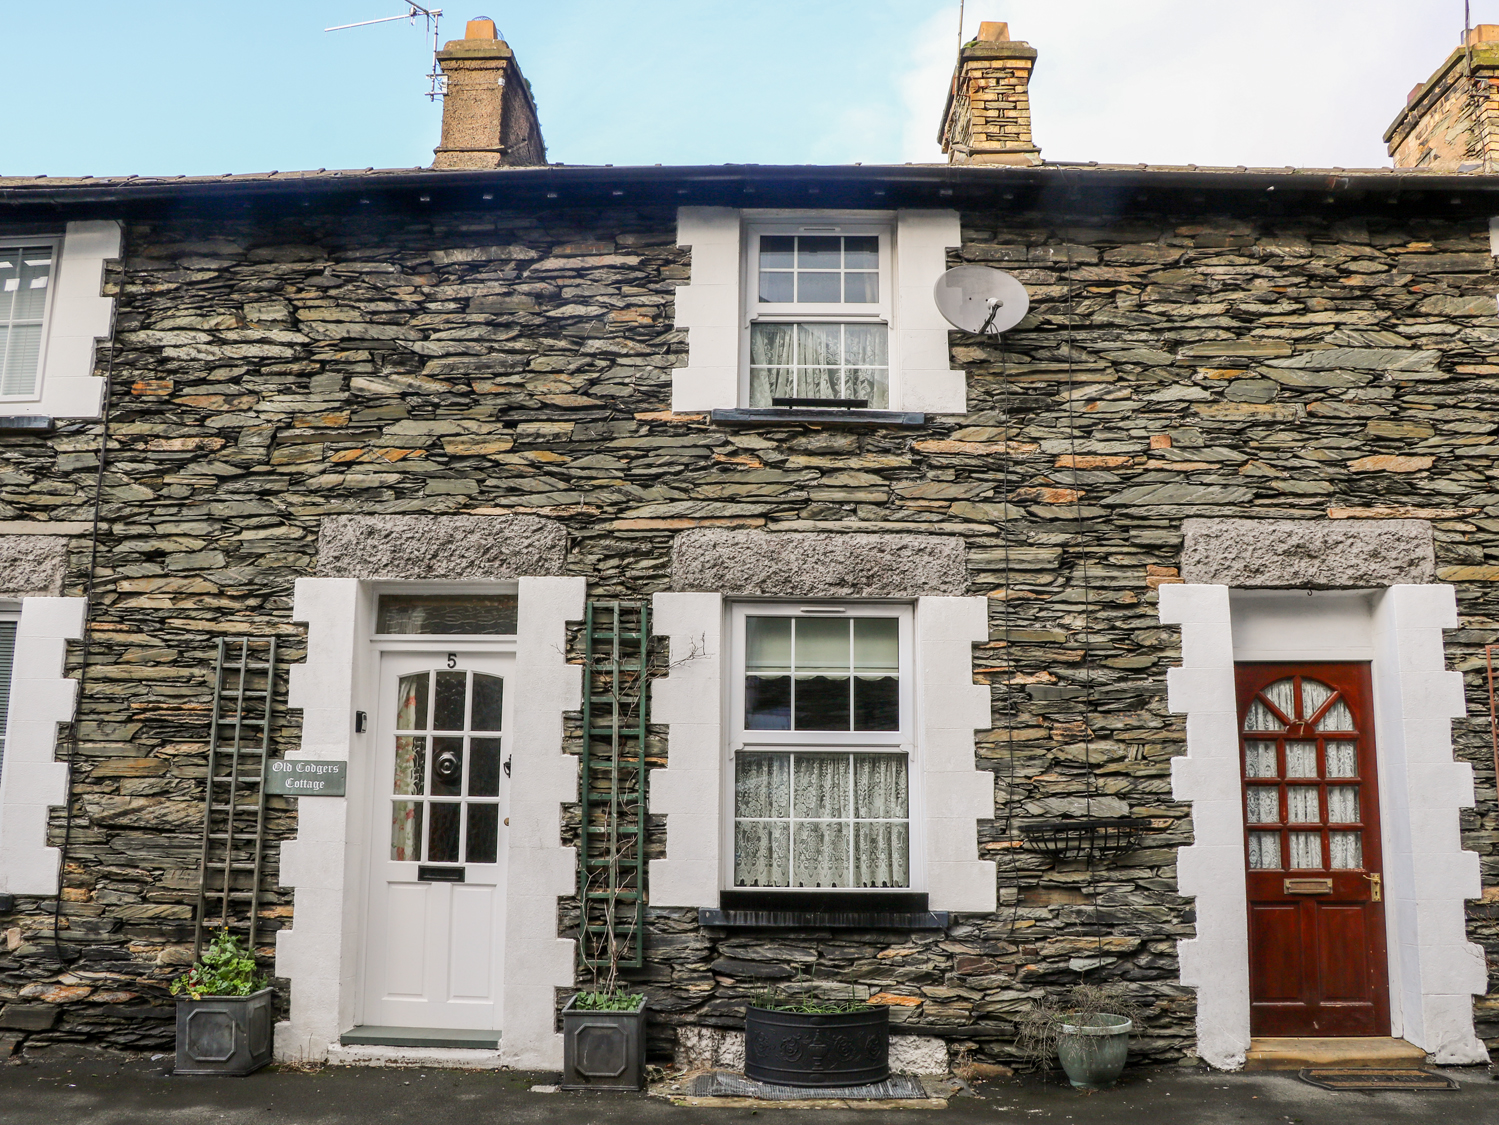 Old Codgers Cottage